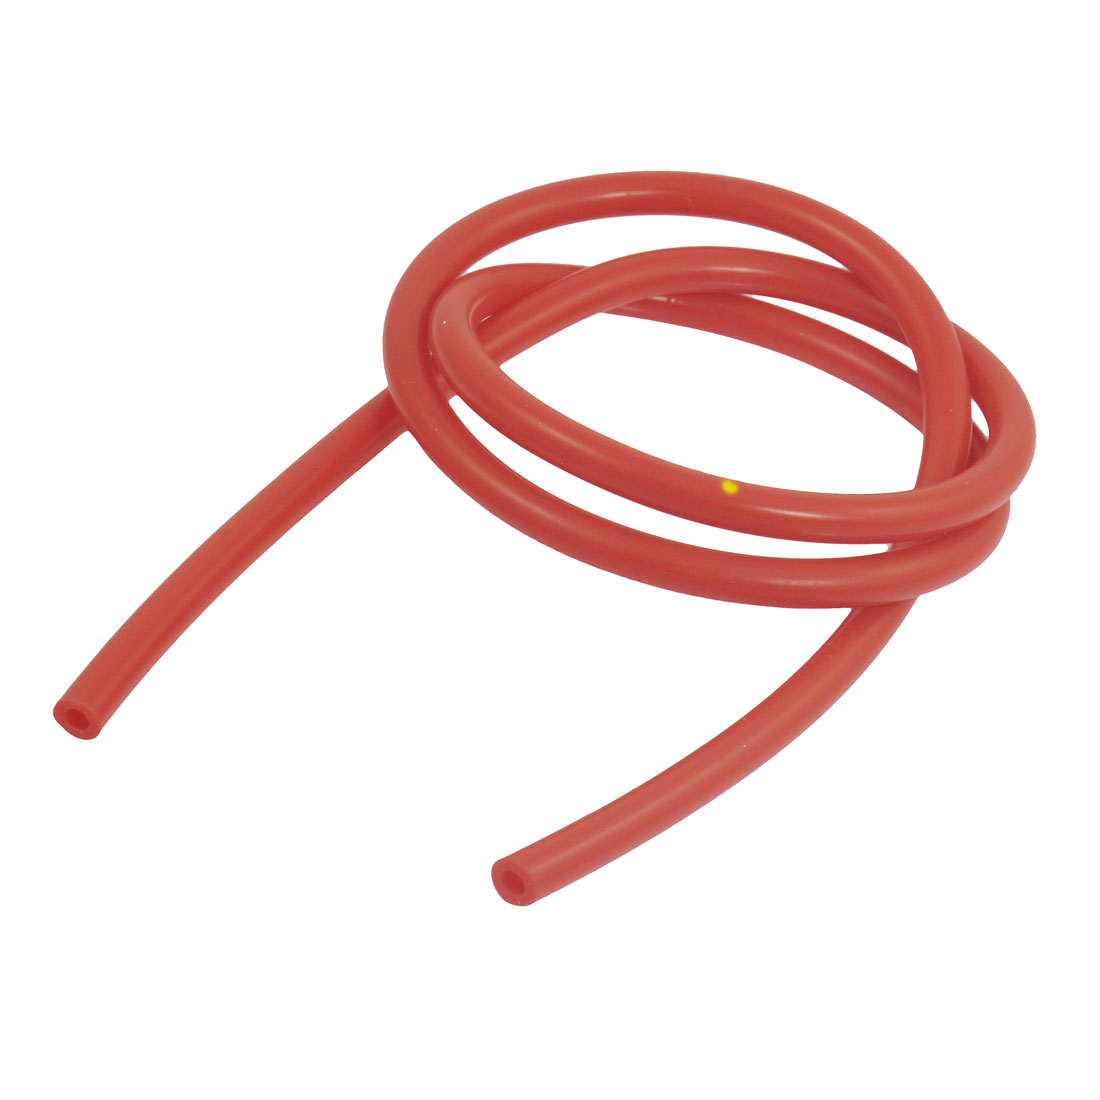 4mm Inner Dia 8mm Outside Dia 1M Long Red Silicone Vacuum Hose Tubing